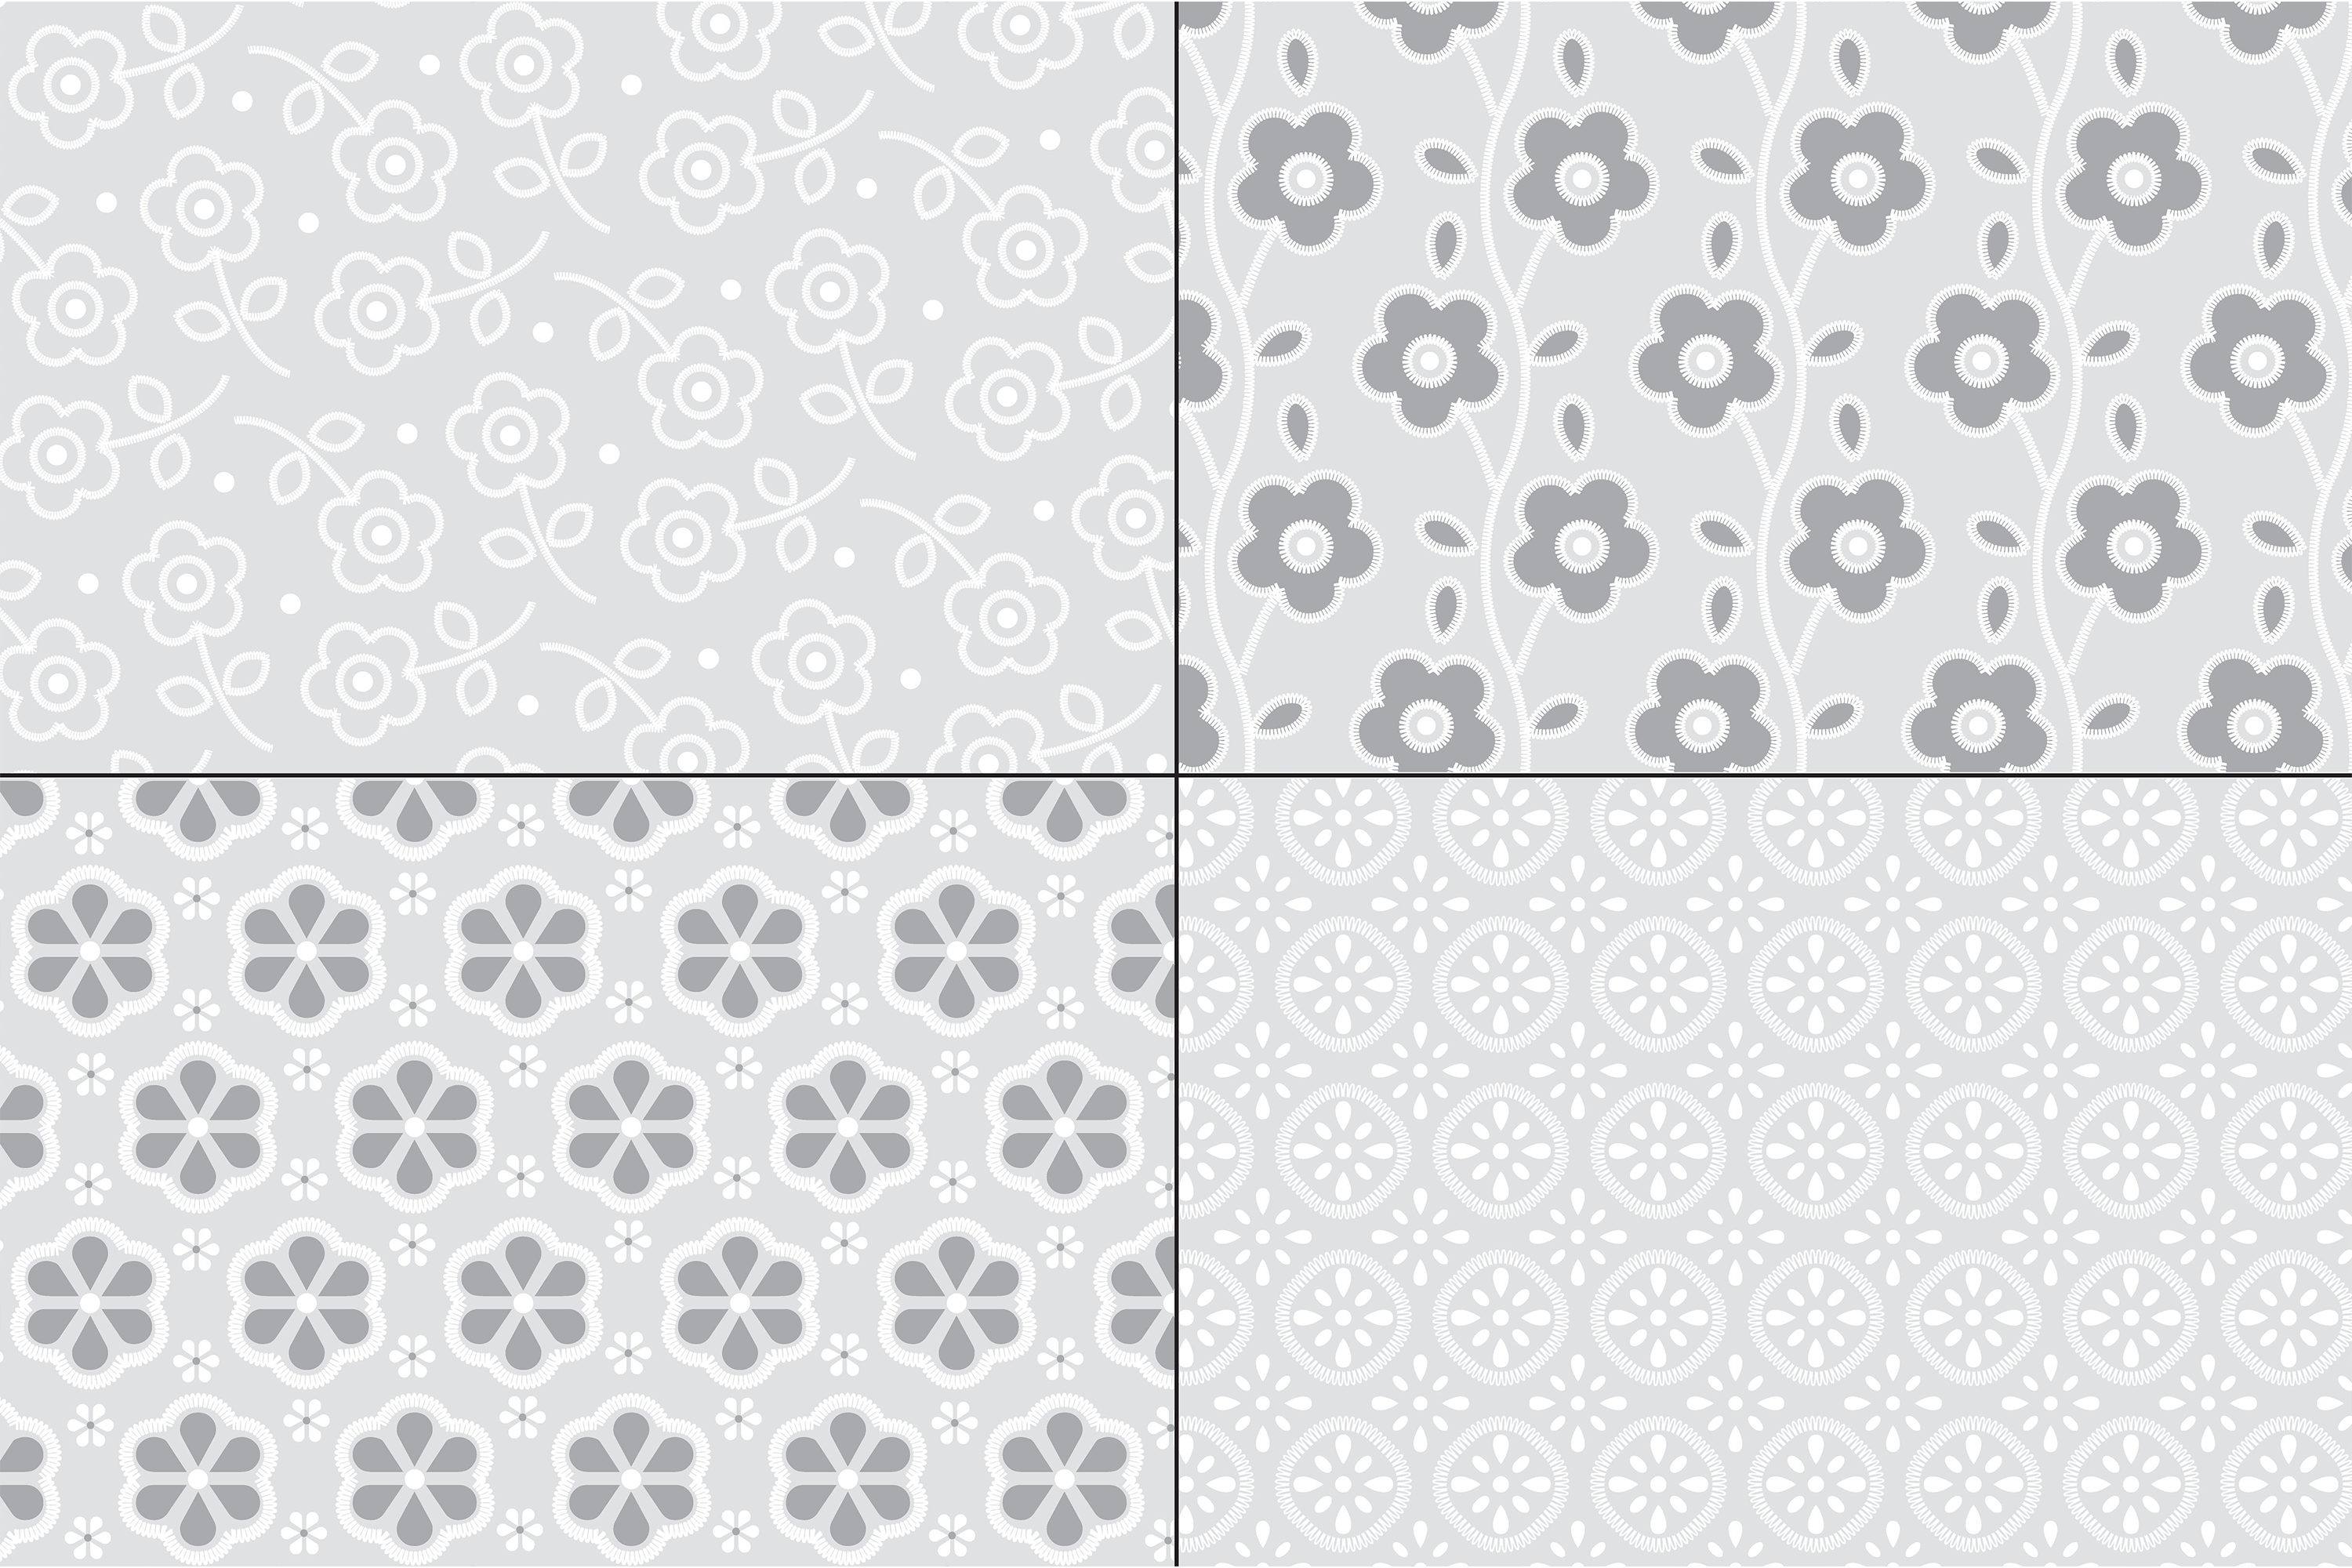 Gray Eyelet Embroidery Patterns example image 2